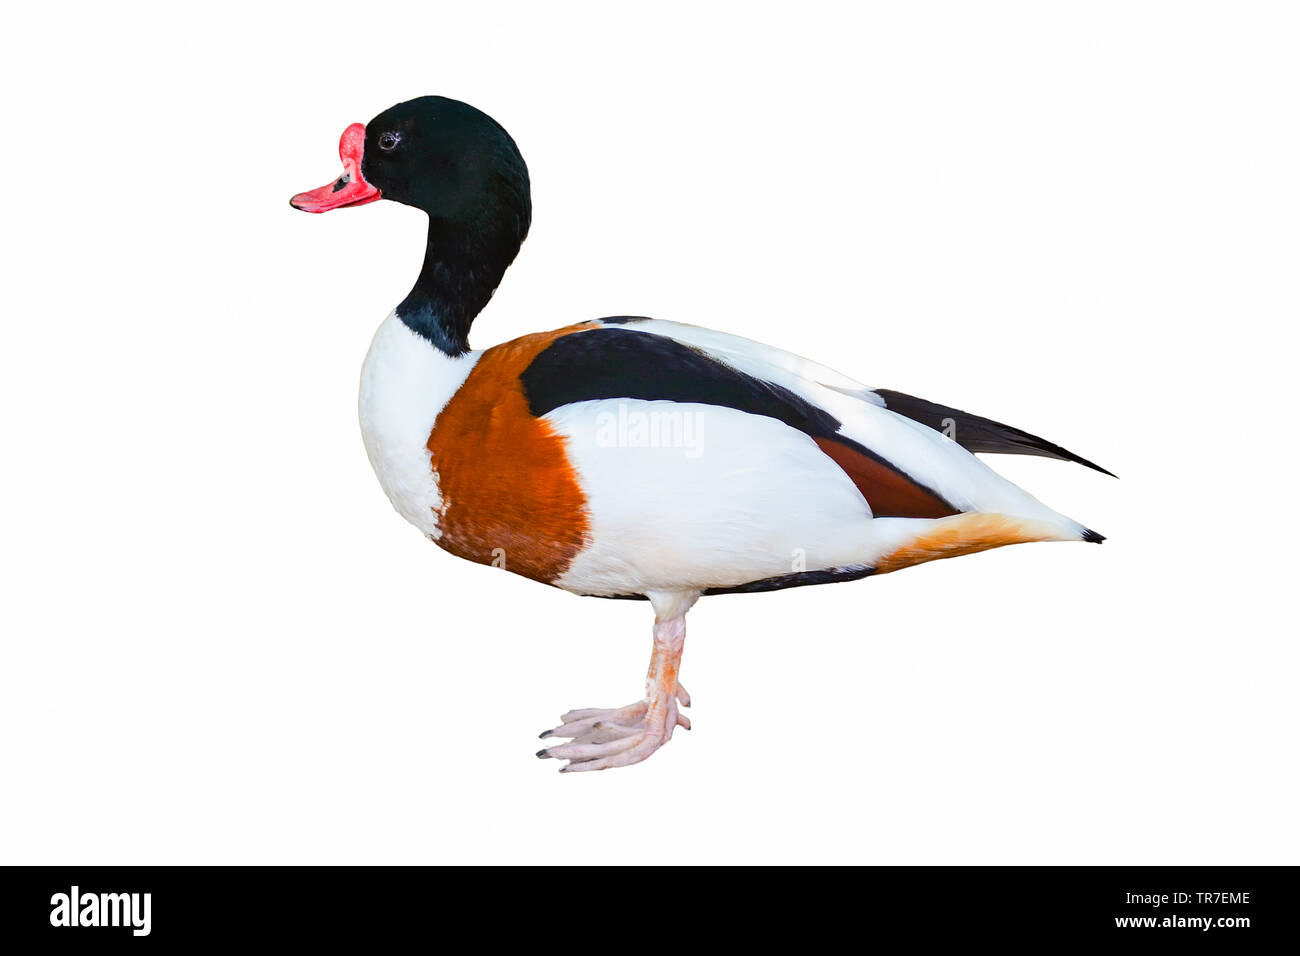 Colourful mallard duck isolated on white background - Stock Image